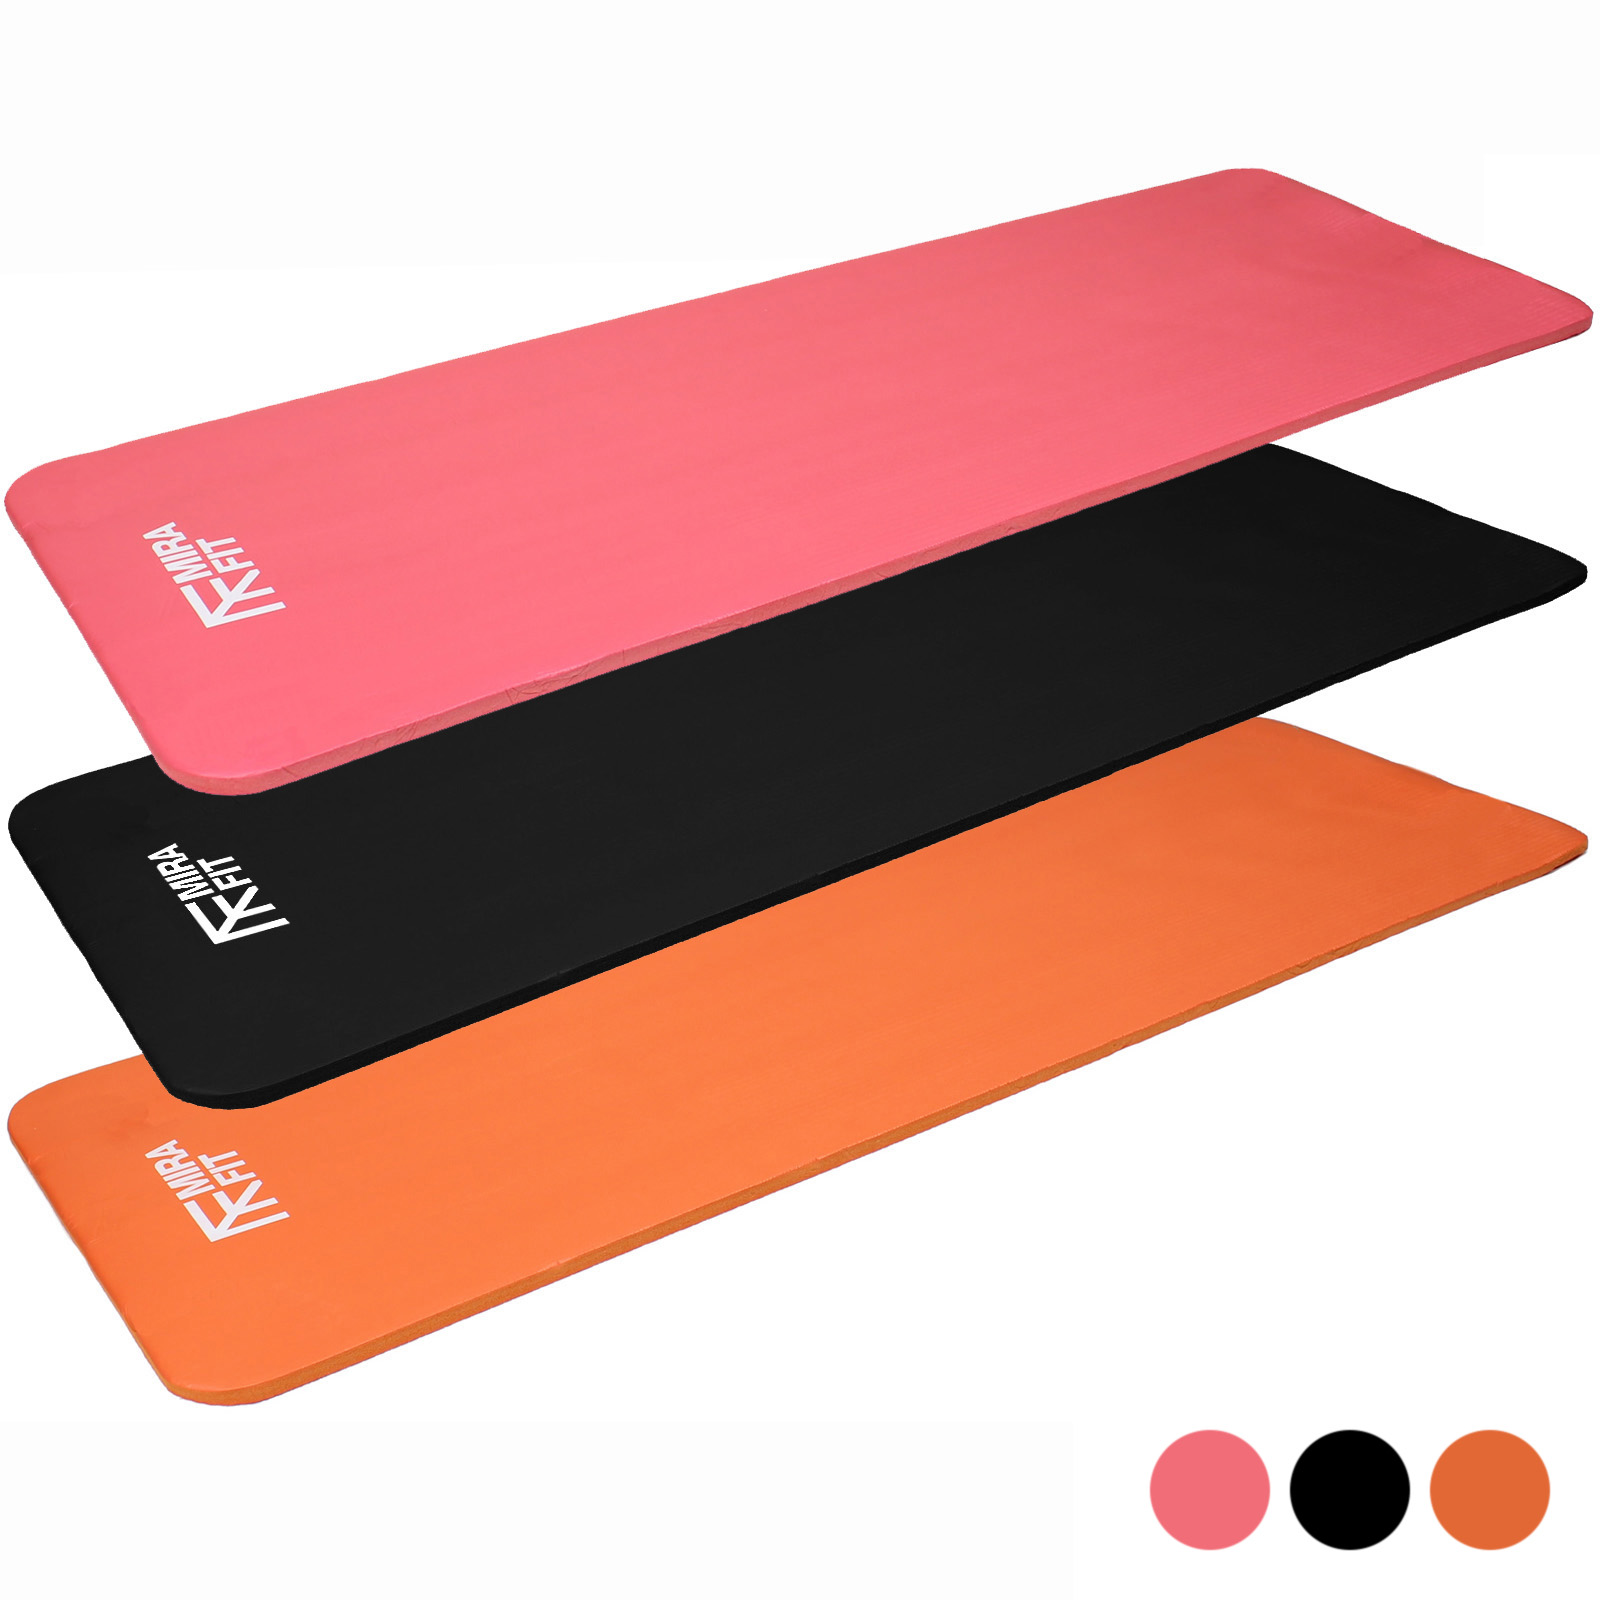 MIRAFIT 15mm Yoga/Fitness Exercise/Workout Floor Mat Gym